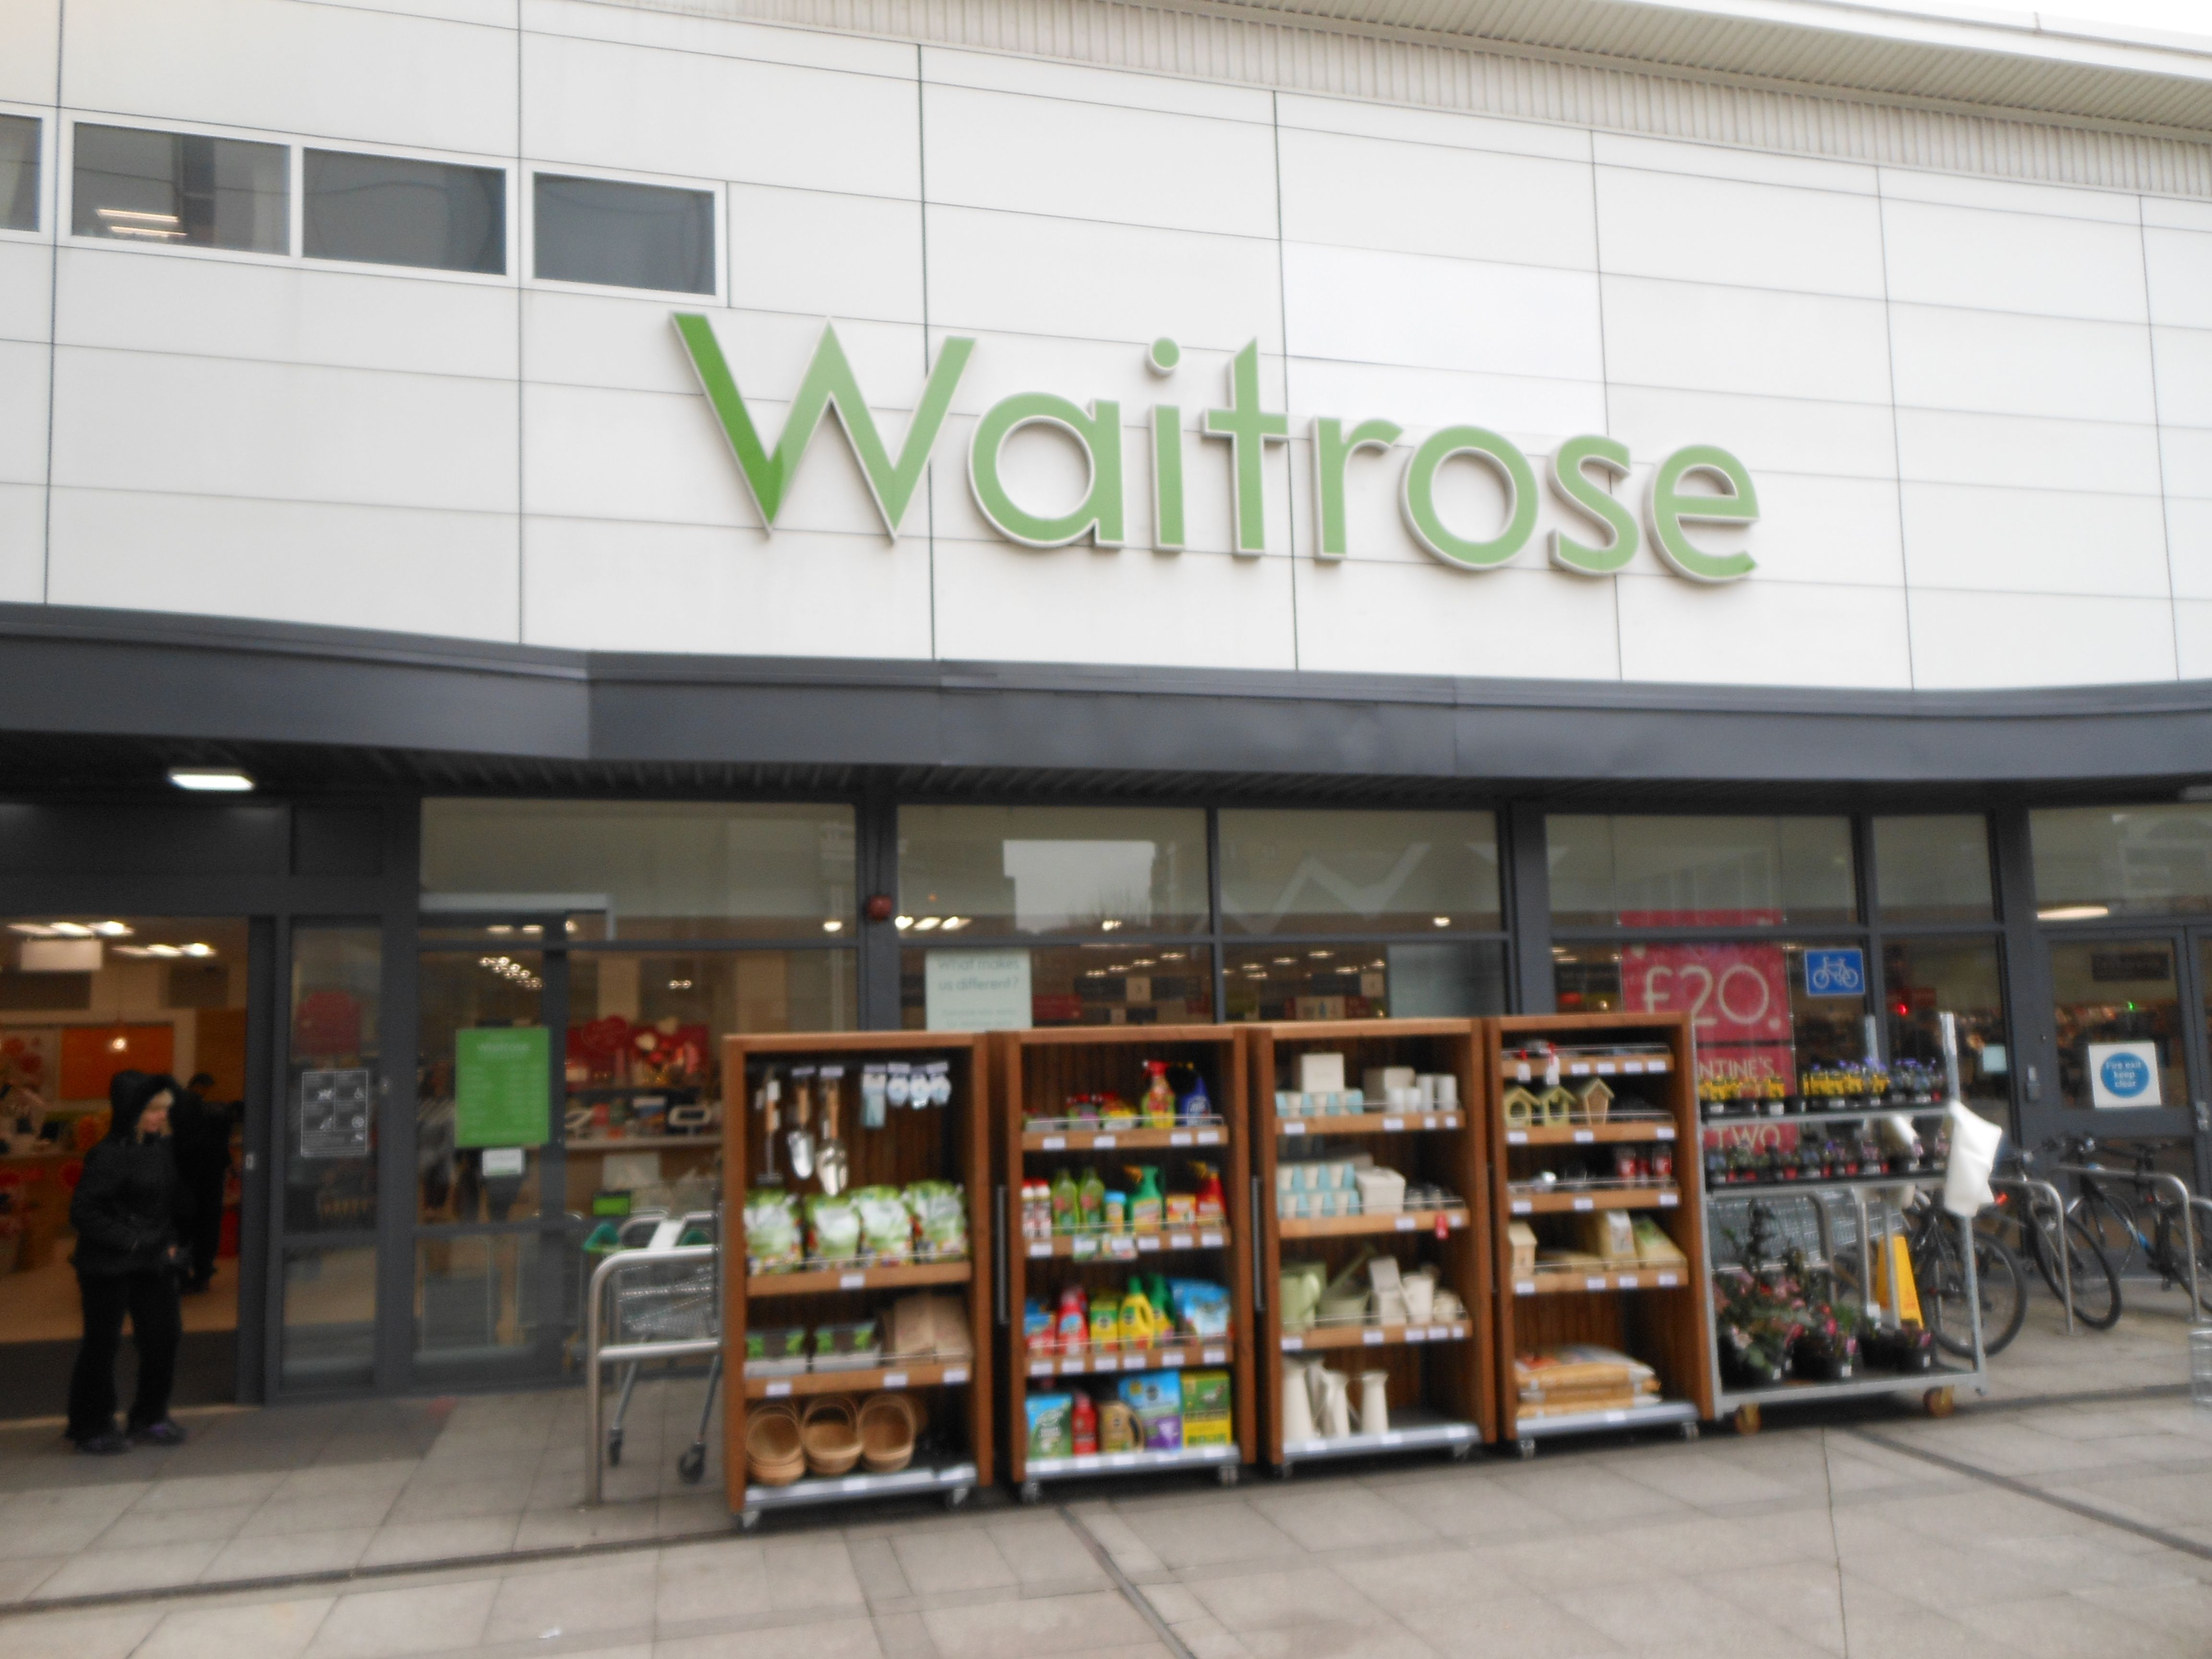 The Story Of St Katharines Is On Sale At Waitrose St Thomas More